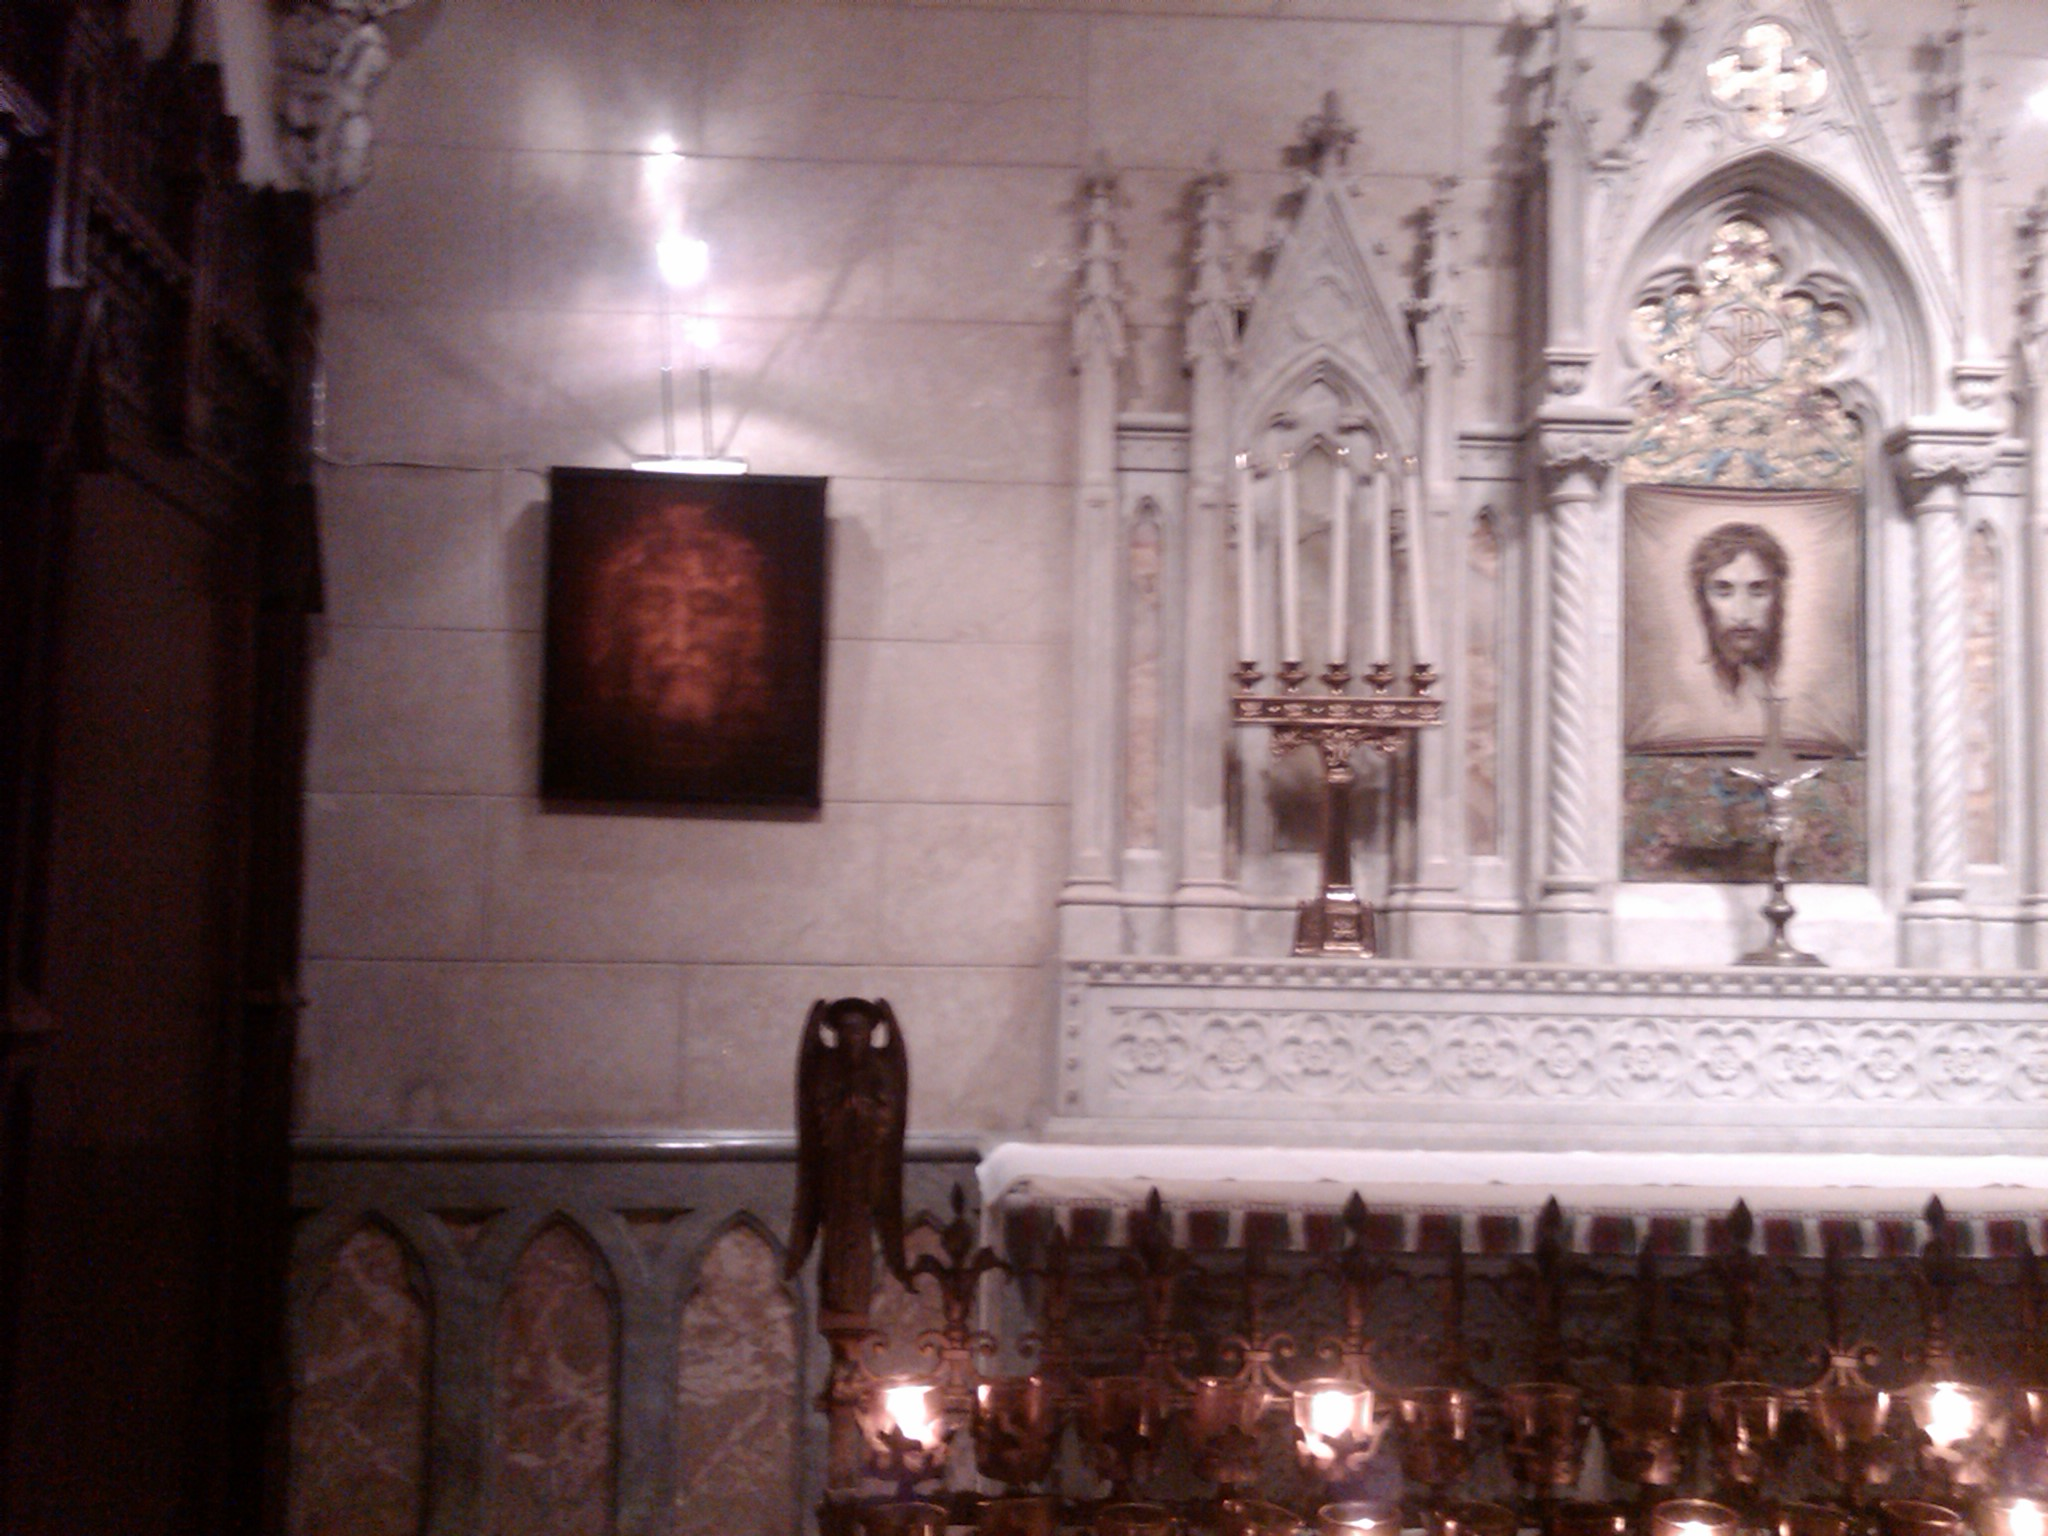 Face hologram in St. Patricks's Cathedral